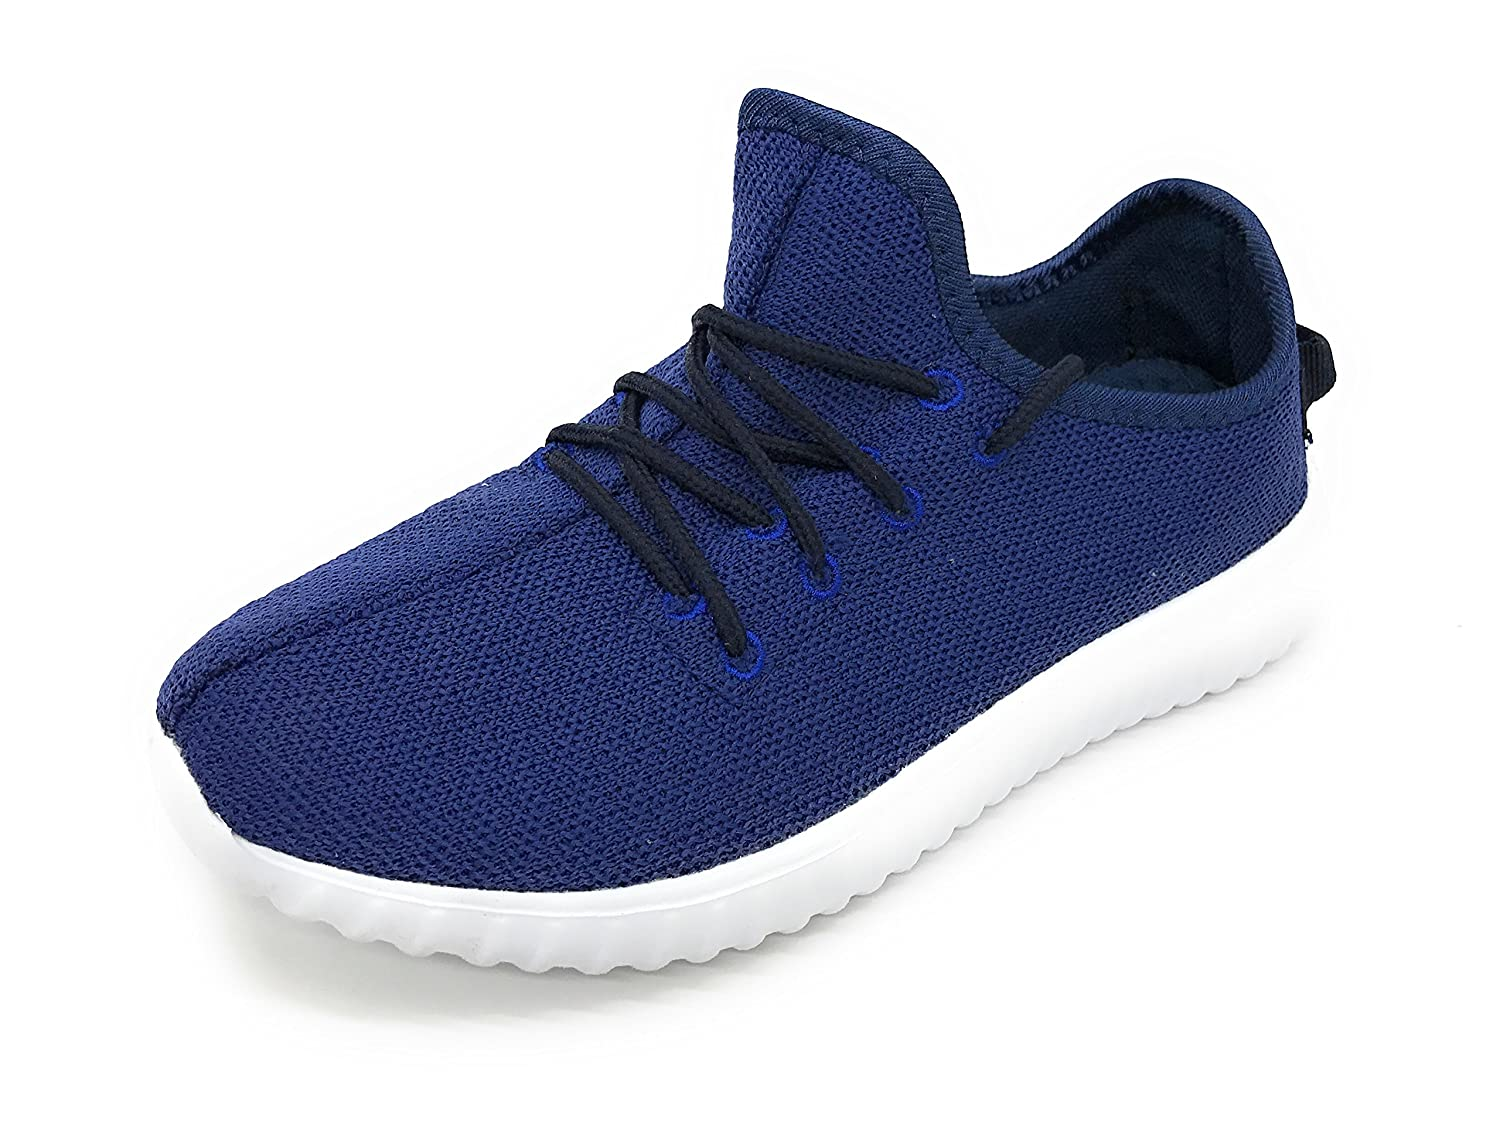 Blue Berry EASY21 Women Casual Fashion Sneakers Breathable Athletic Sports Light Weight Shoes B073DGZG5P 8 B(M) US|Navy